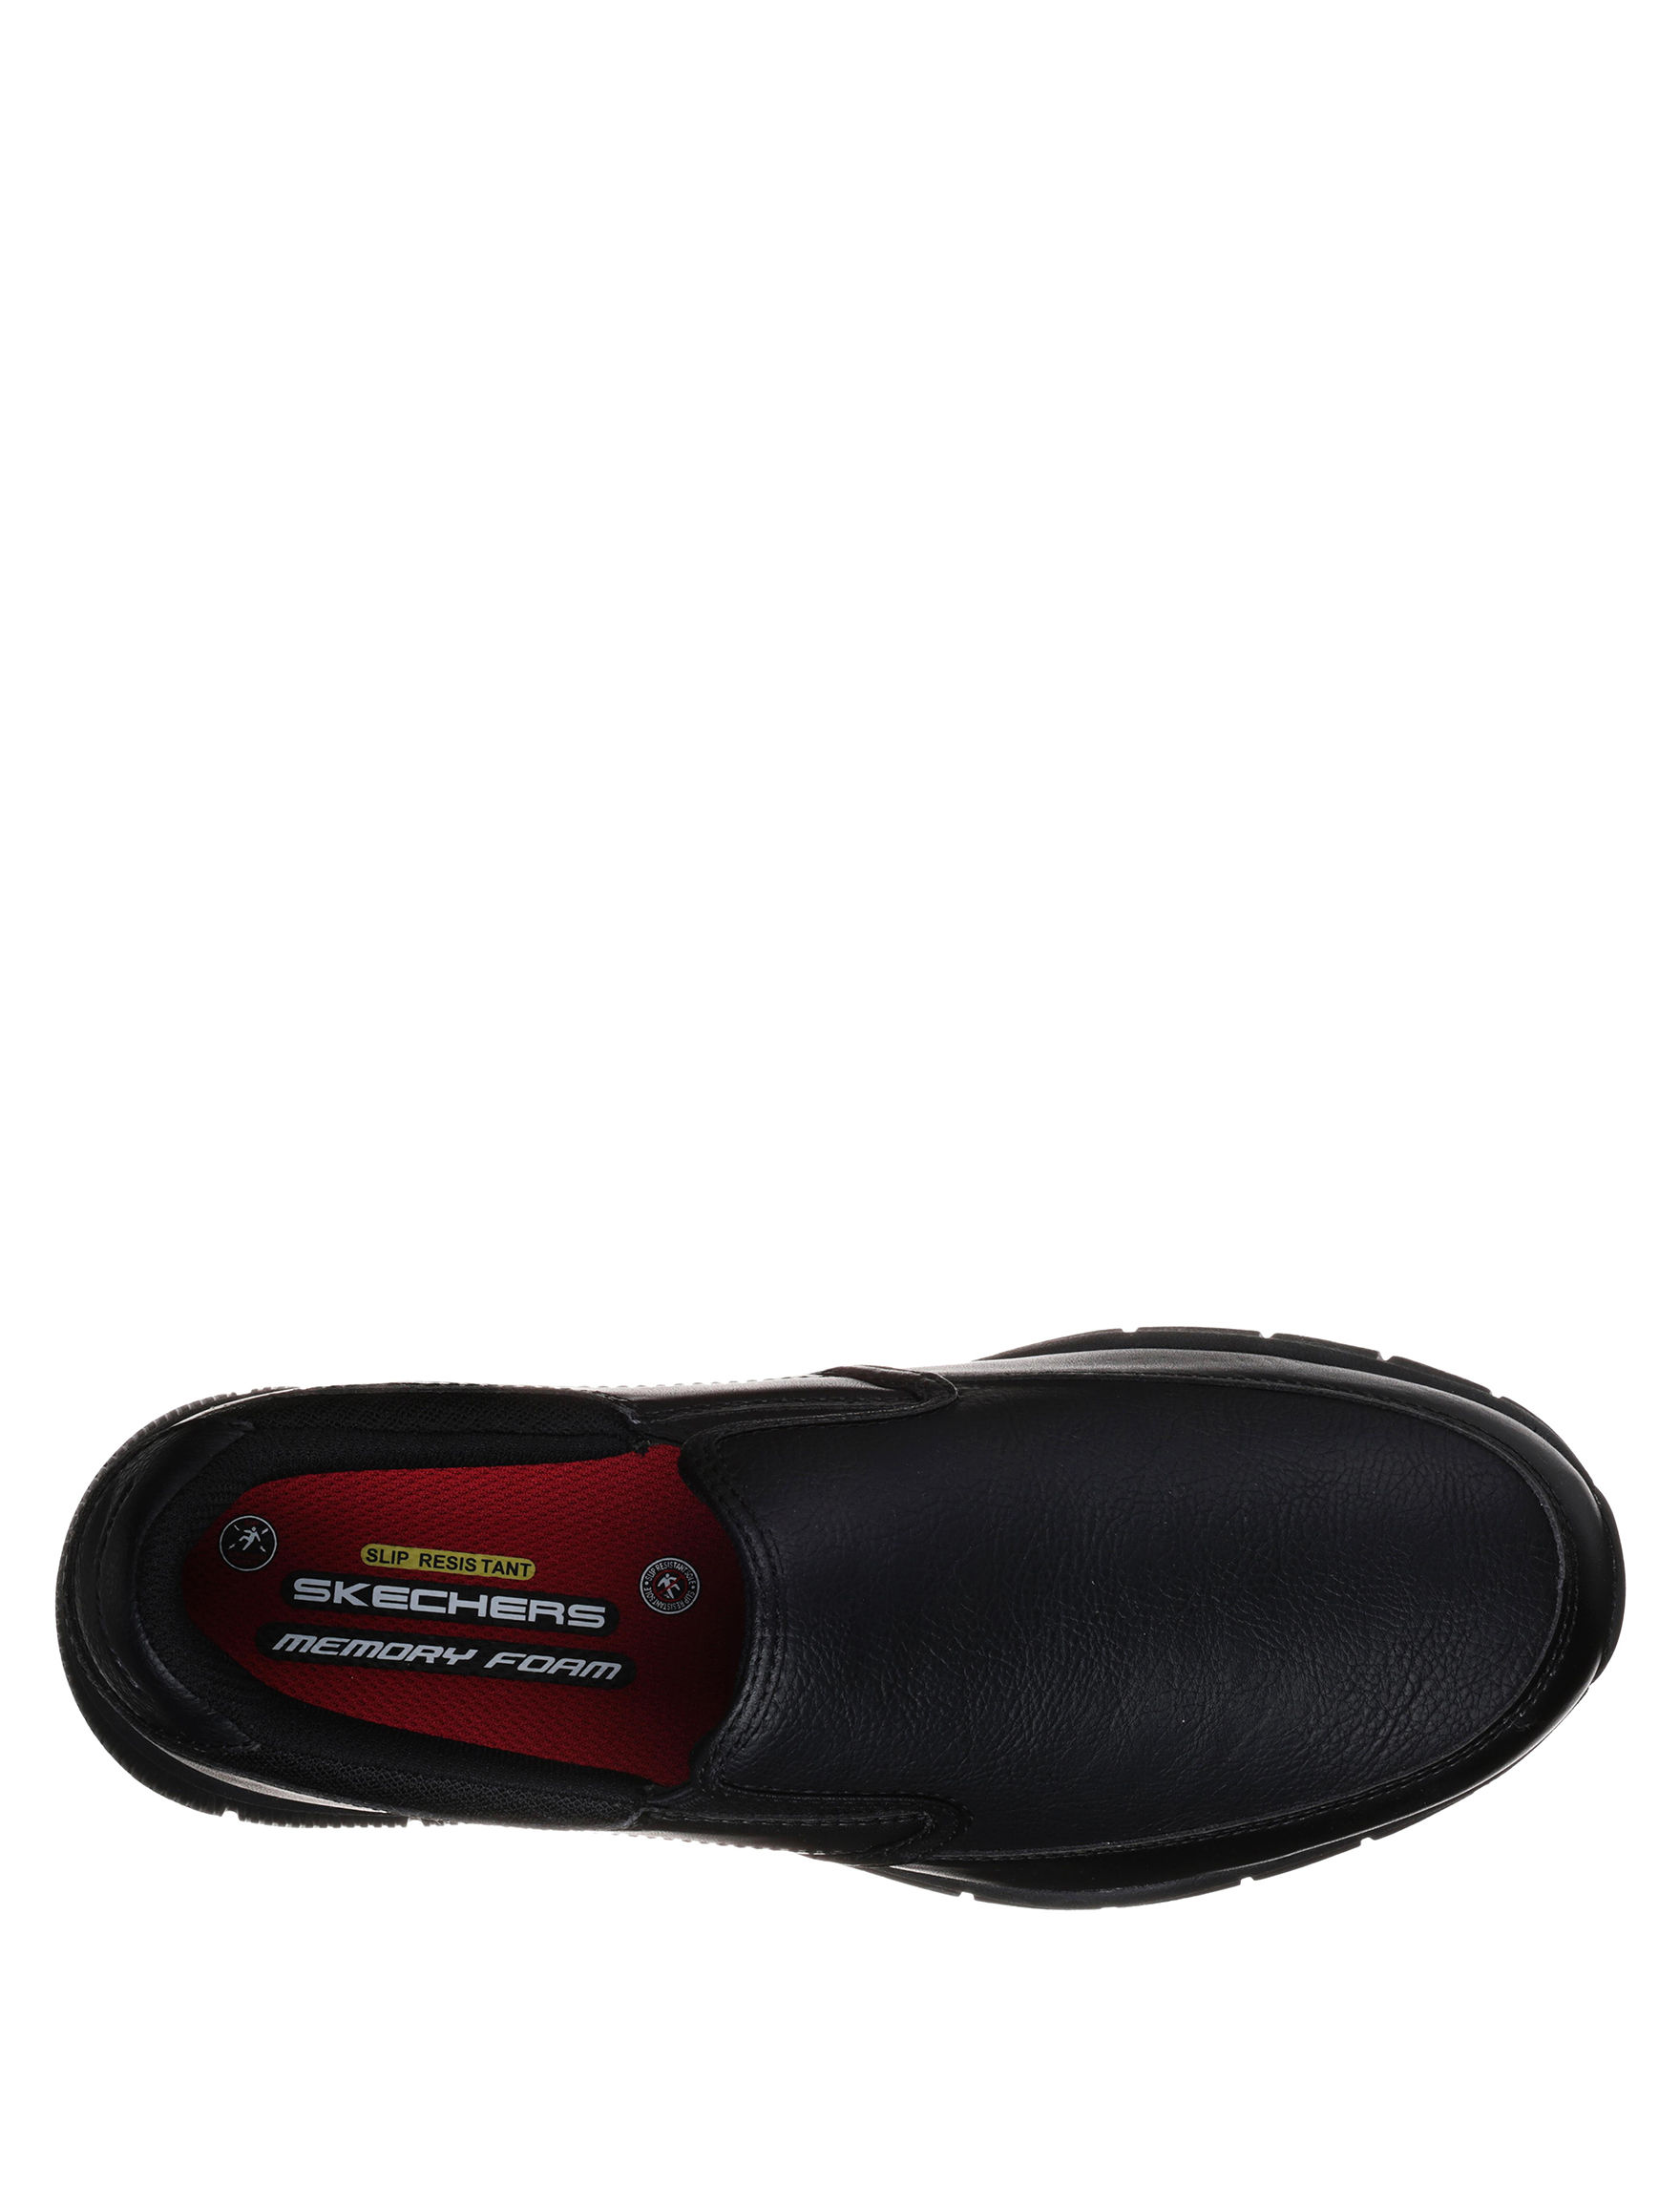 a716383a170e Skechers Men s Relaxed Fit Nampa Groton SR Slip-On Shoes